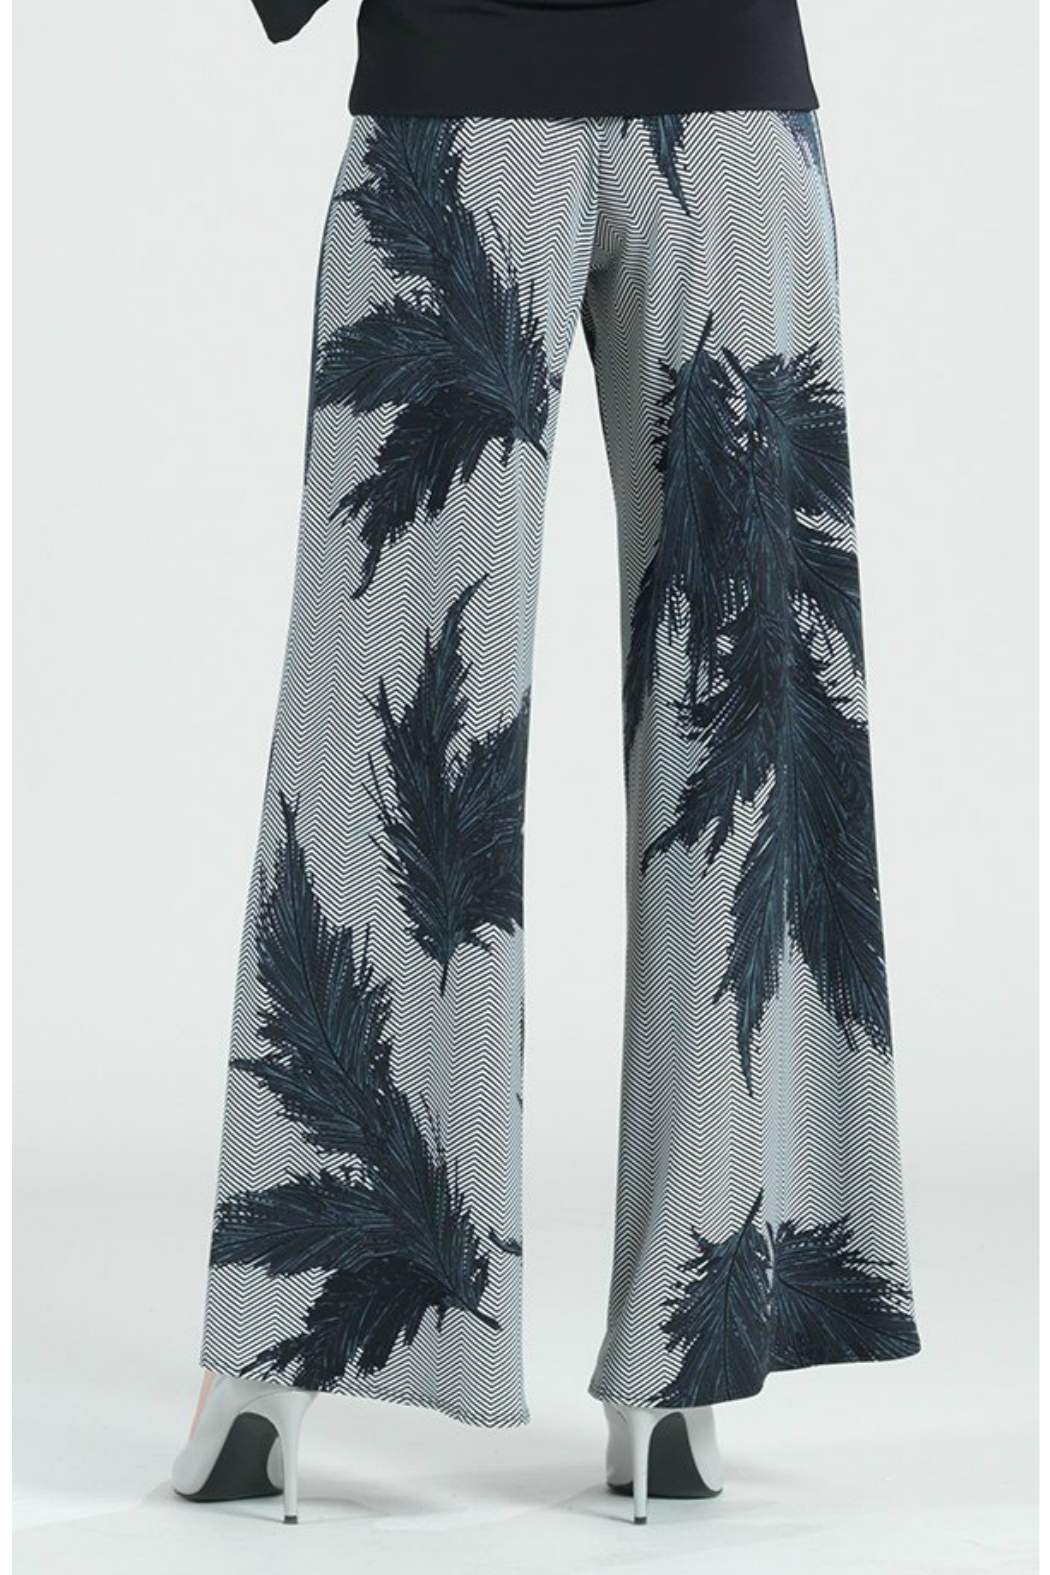 Clara Sunwoo Feather print palazzo pant - Side Cropped Image